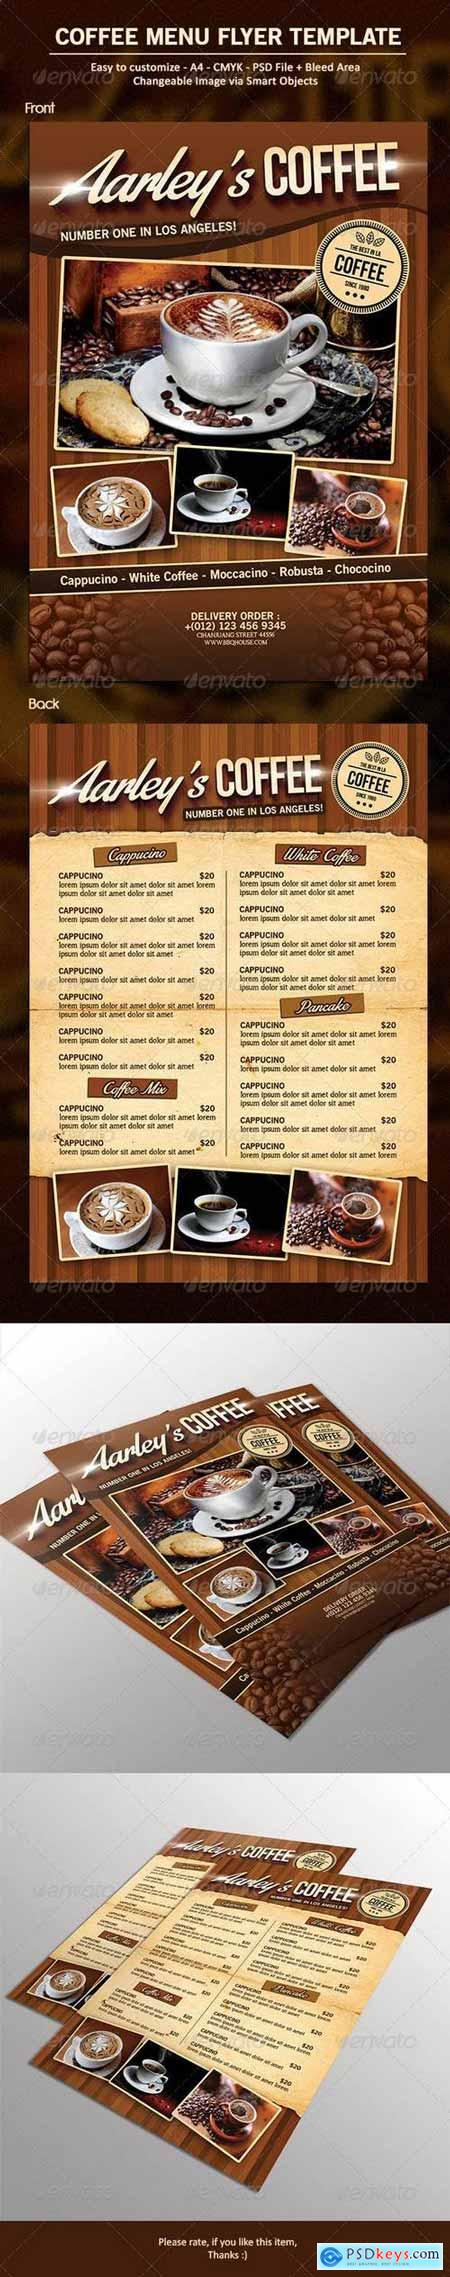 Graphicriver Coffee Menu Flyer